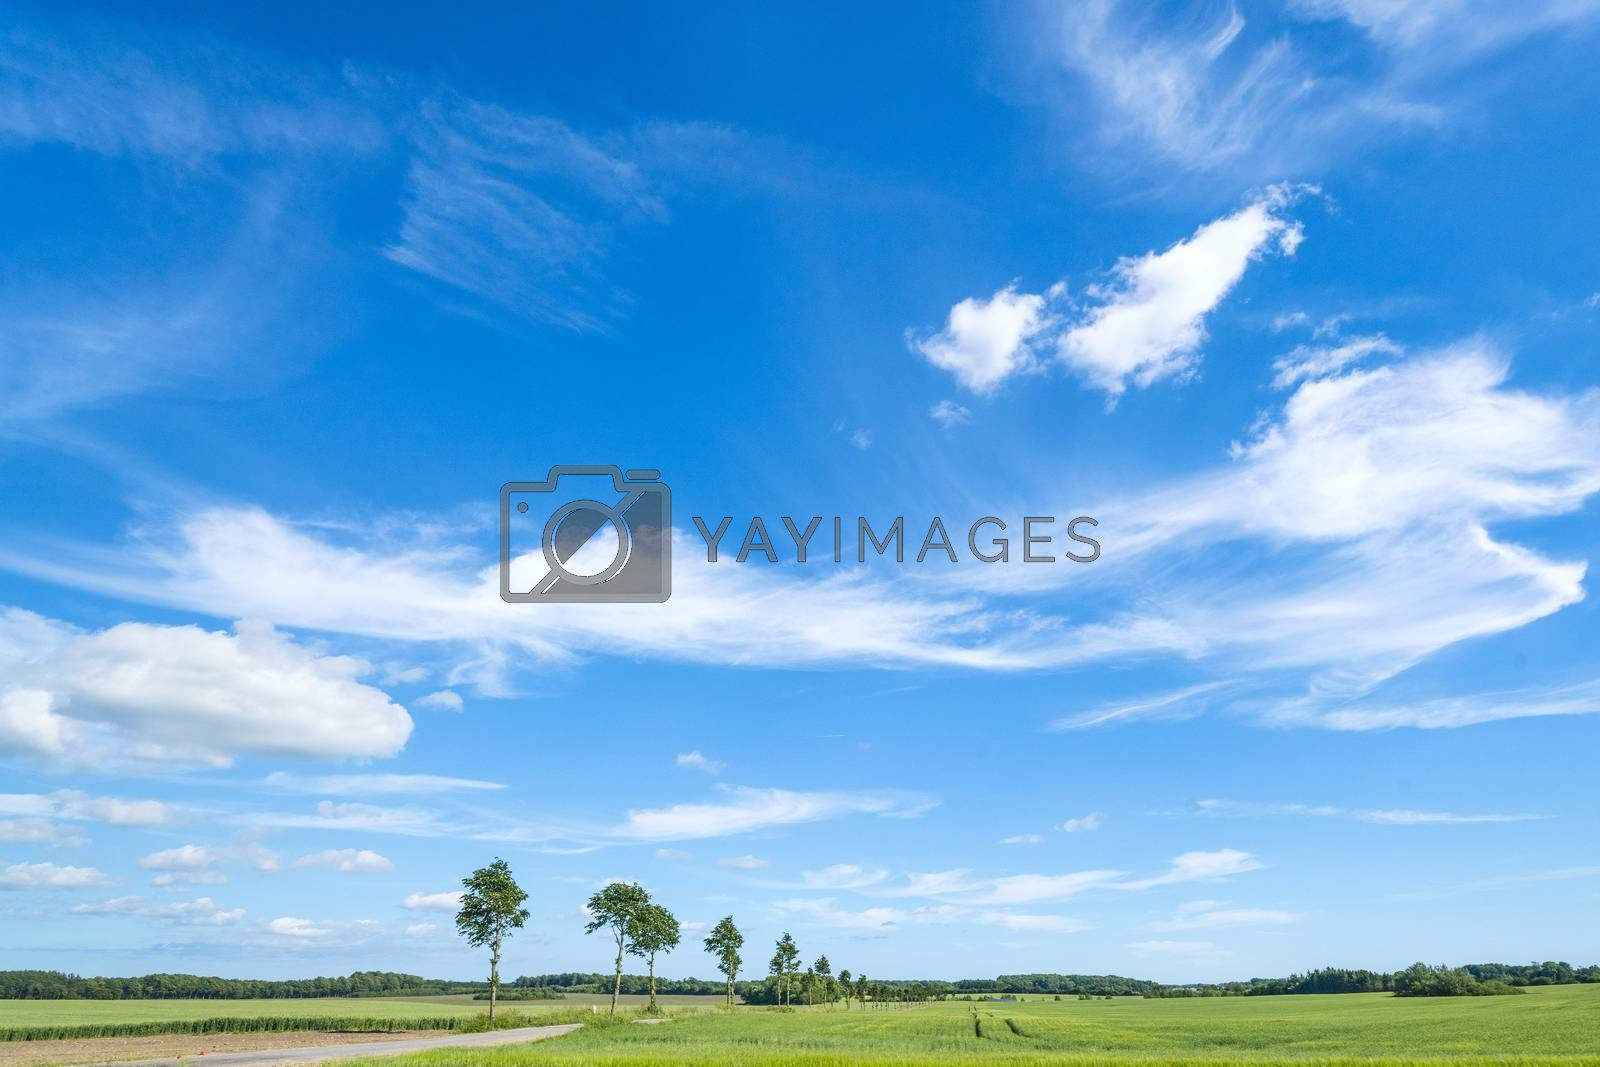 Landscape in the summer with white clouds in the blue sky over green fields